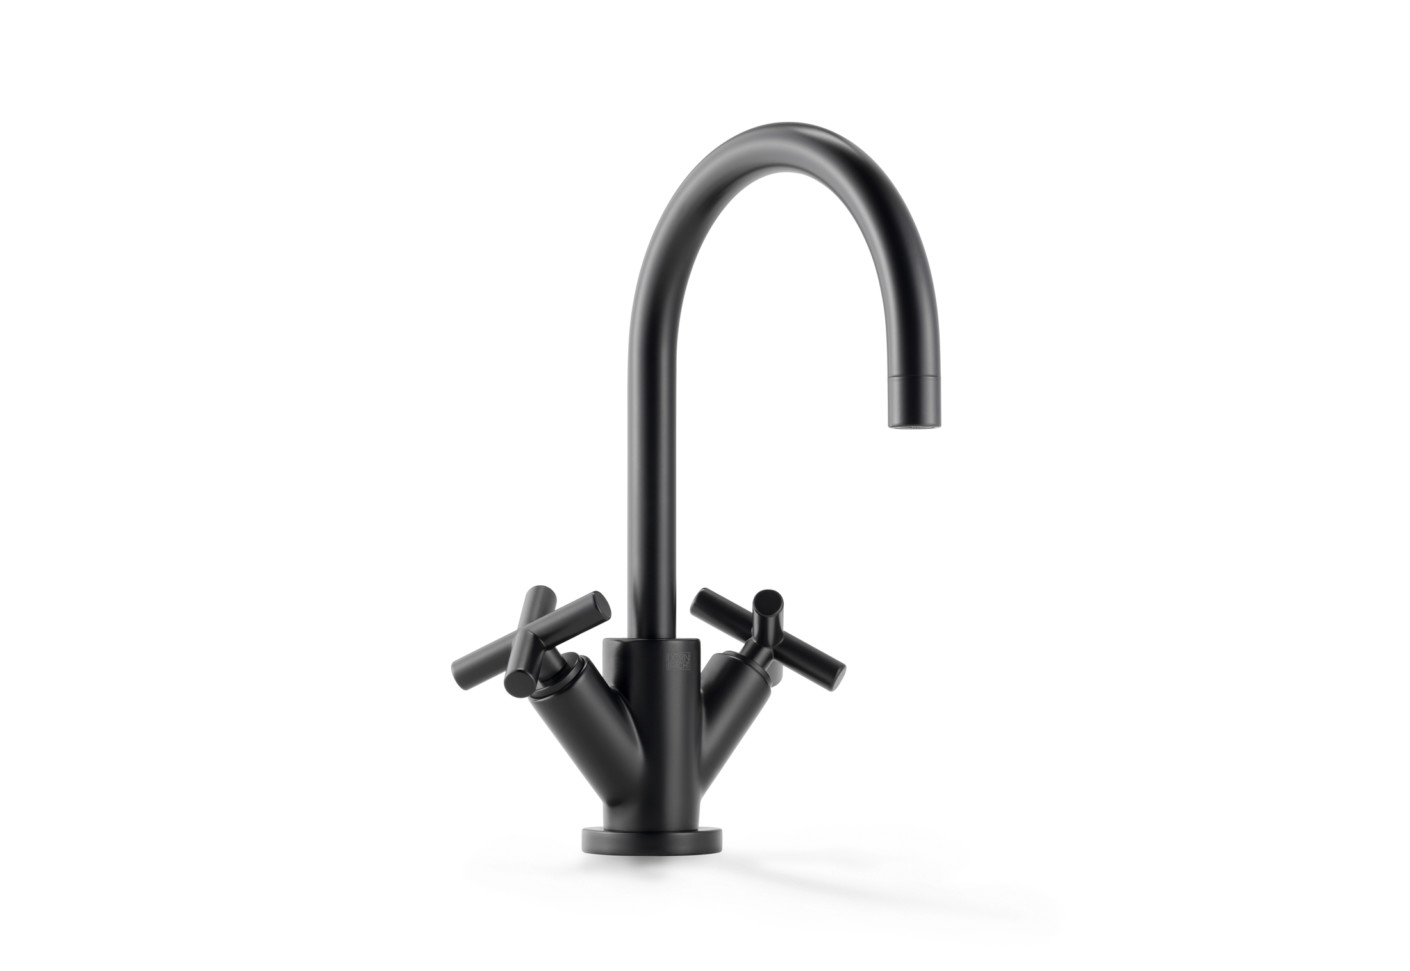 dornbracht faucet kitchen pink appliances tara black single-hole basin mixer by | stylepark